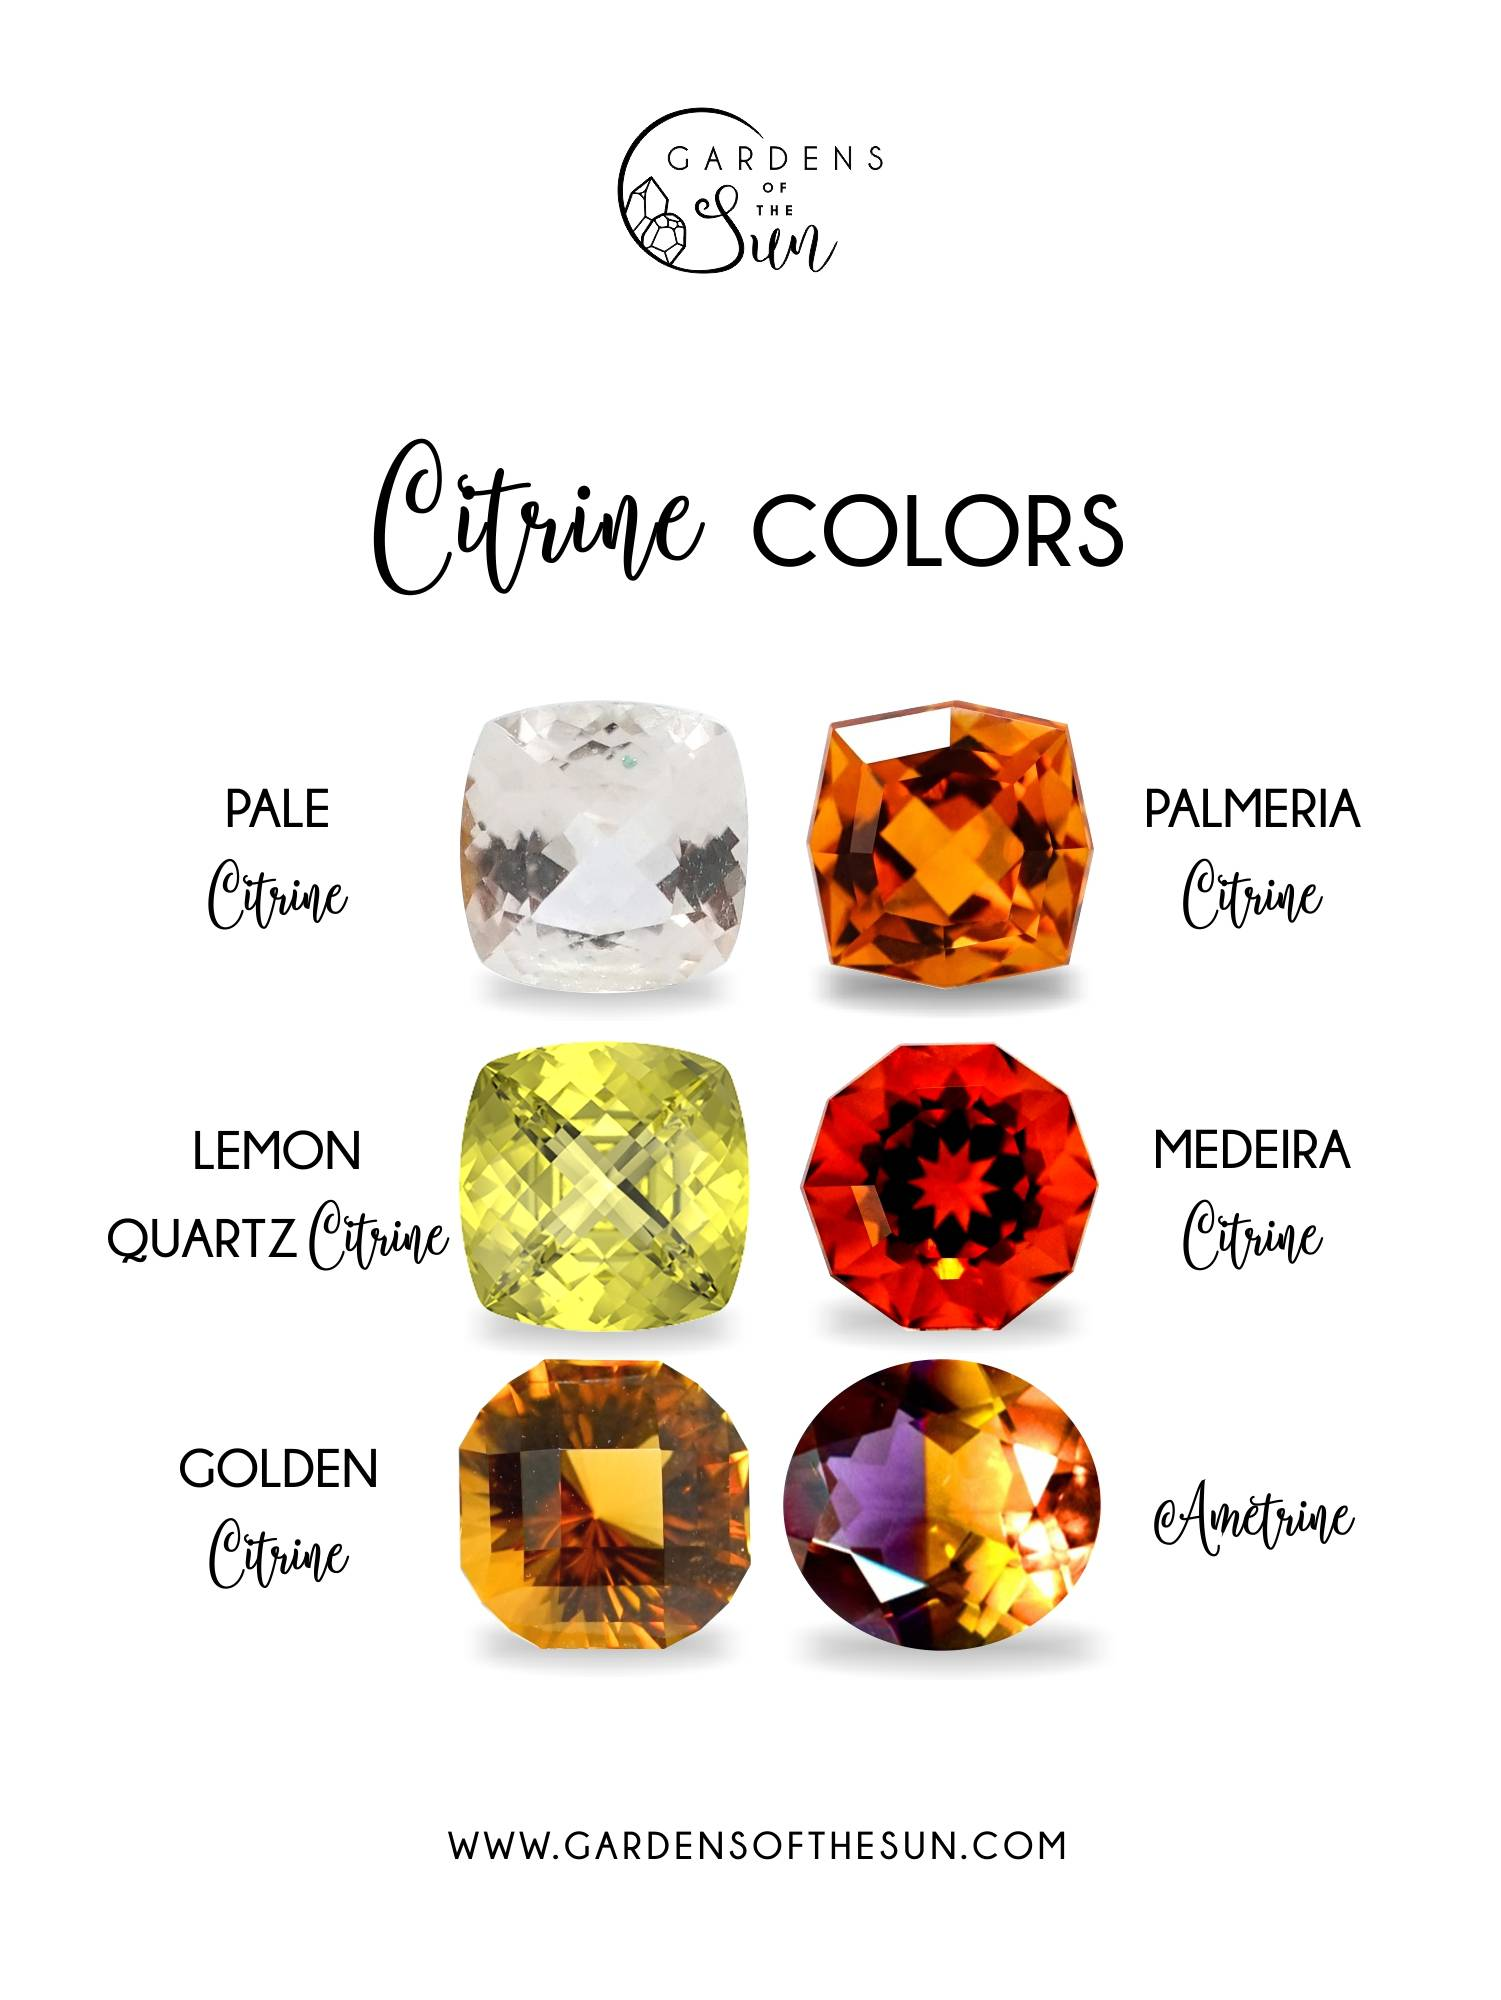 Citrine colors